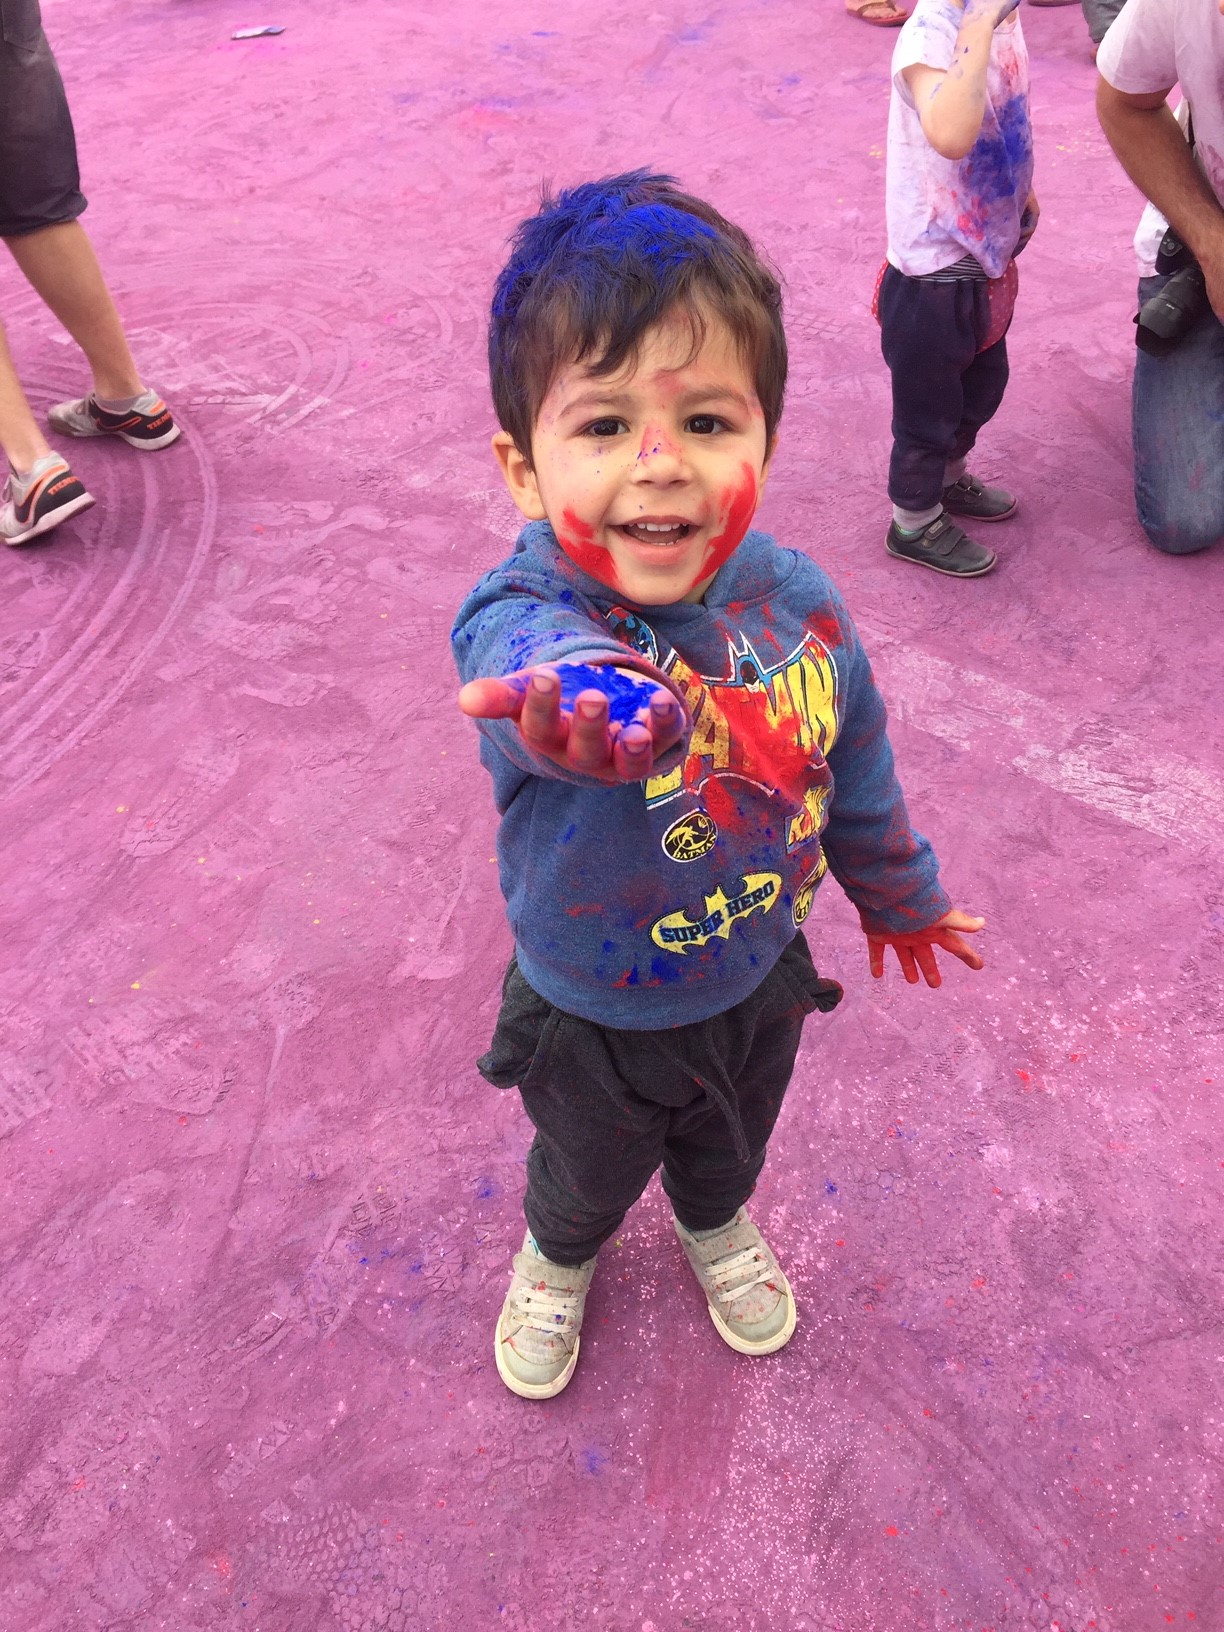 Sandeep's son celebrates Holi